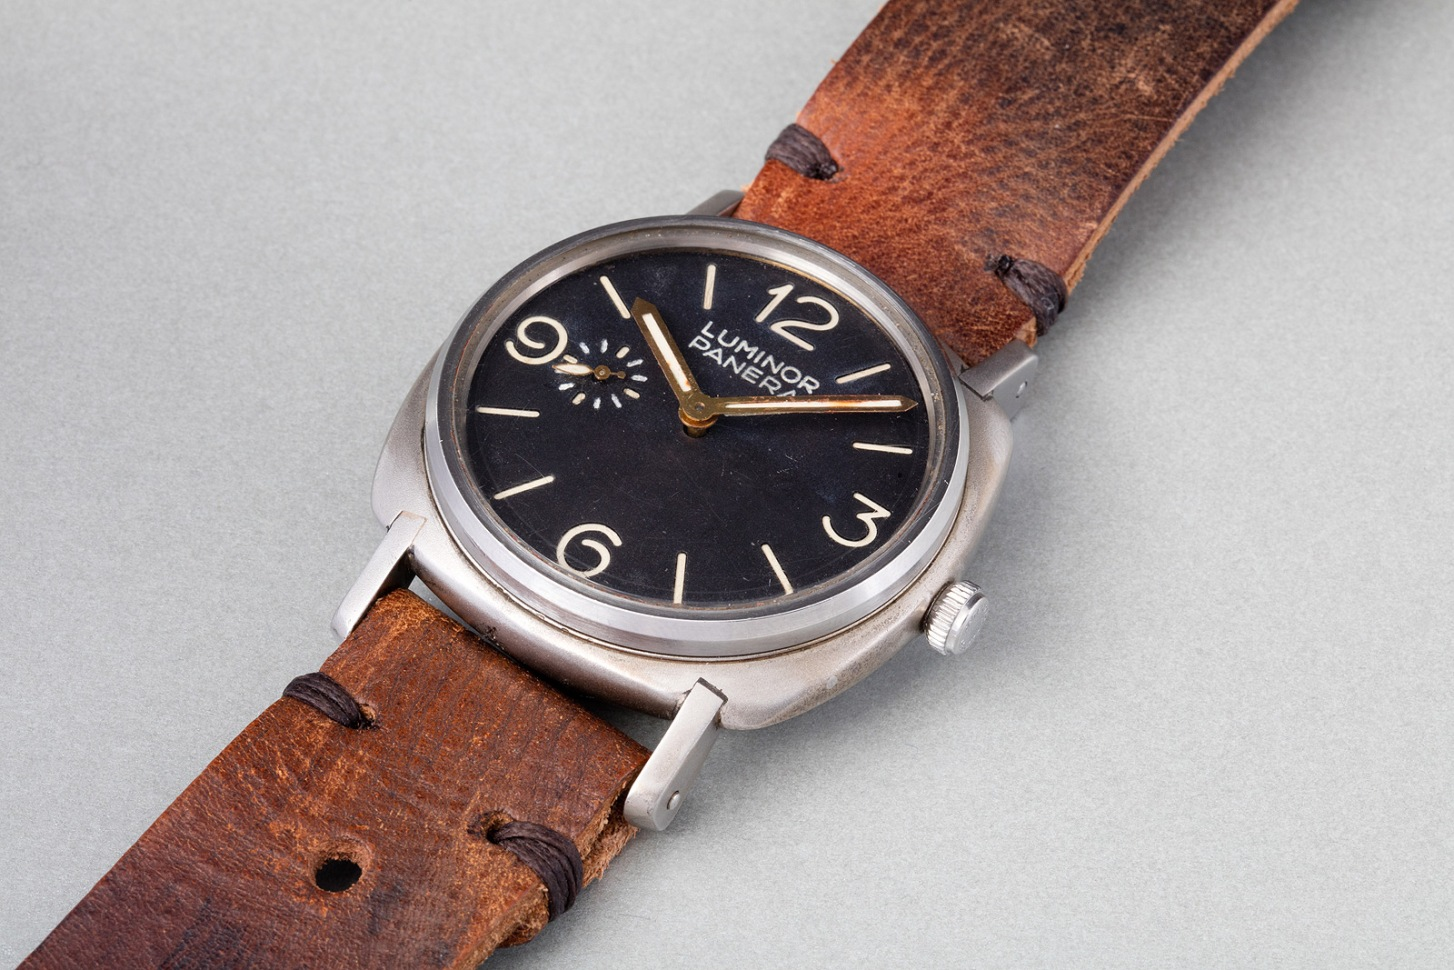 https://watchengines.files.wordpress.com/2016/04/panerai_welded_matr_11_dial.jpg?w=1455